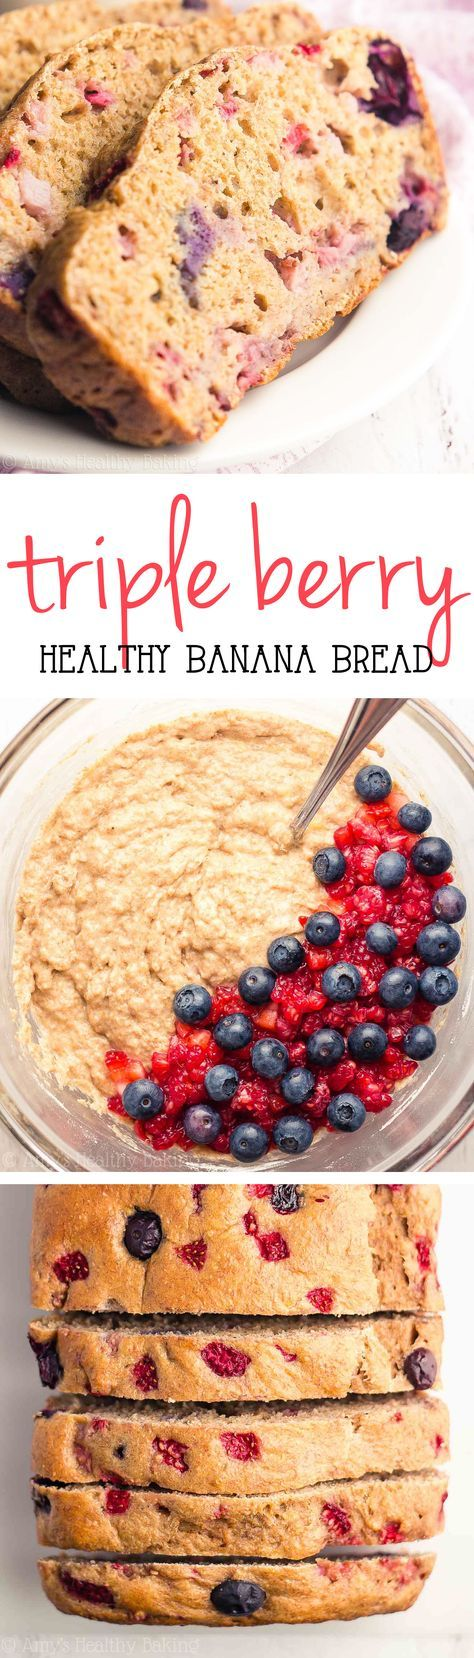 Skinny Triple Berry Banana Bread -- a great healthy breakfast or snack! This easy recipe is full of fruit & just 115 calories!